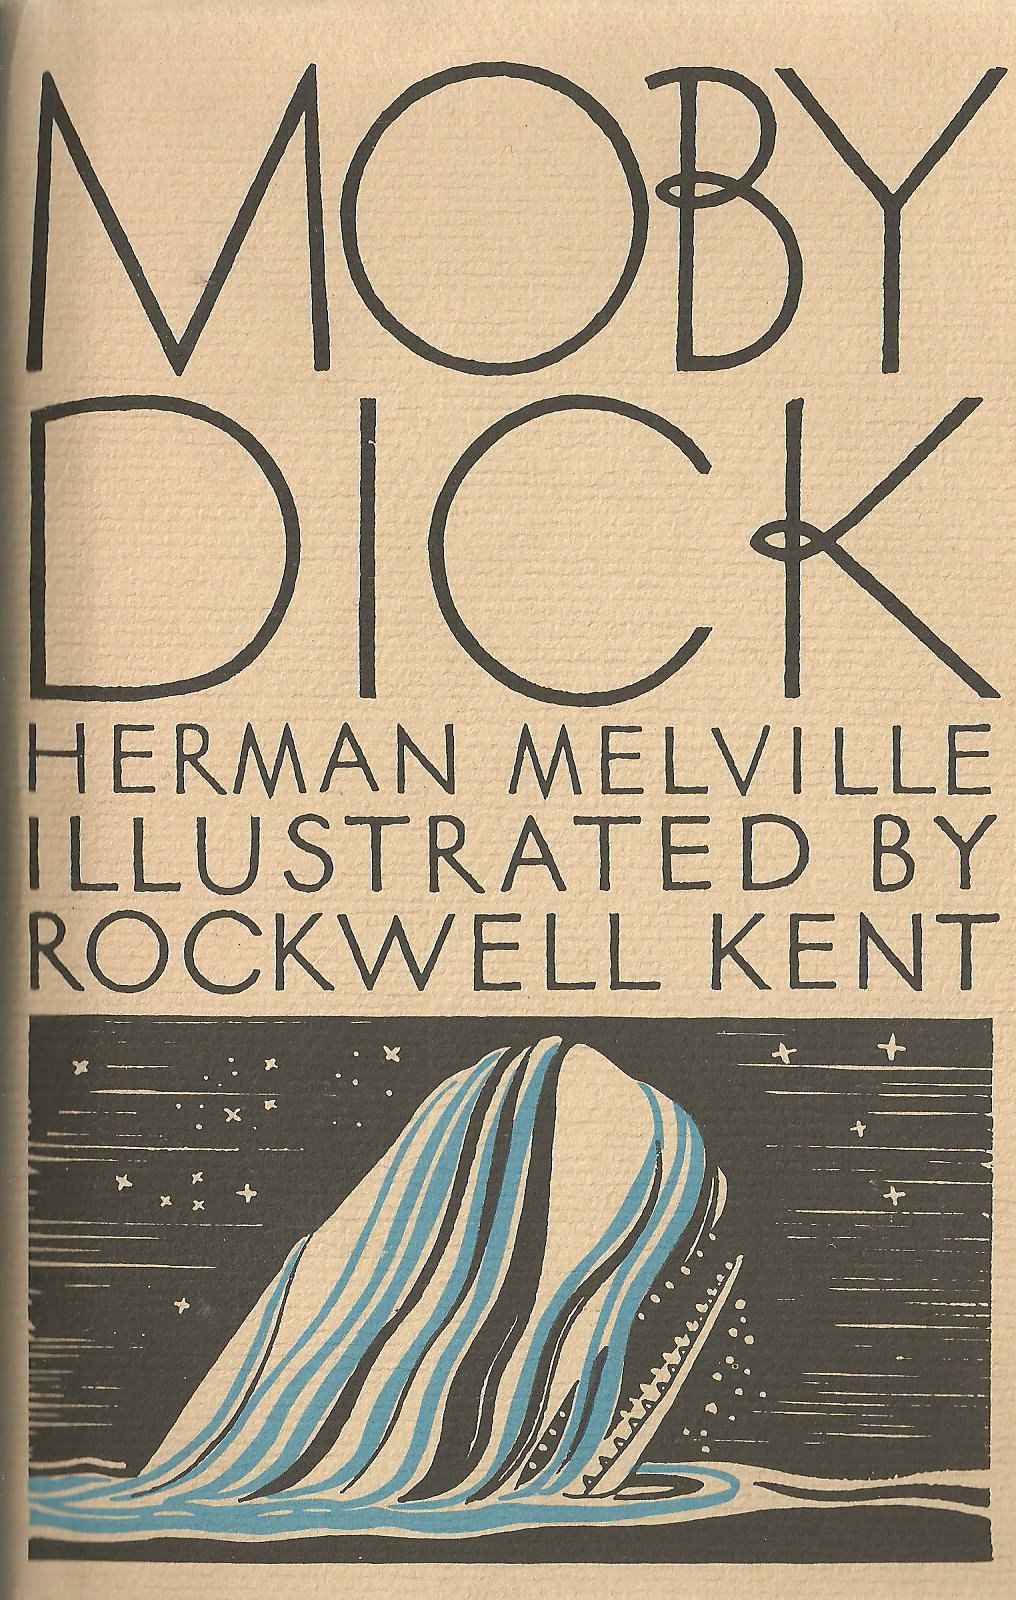 an analysis of the book moby dick by herman melville Free coursework on a critical analysis of herman melville a critical analysis of herman melville's moby dick mcsweeny, kerry moby dick, ishmael's mighty book.